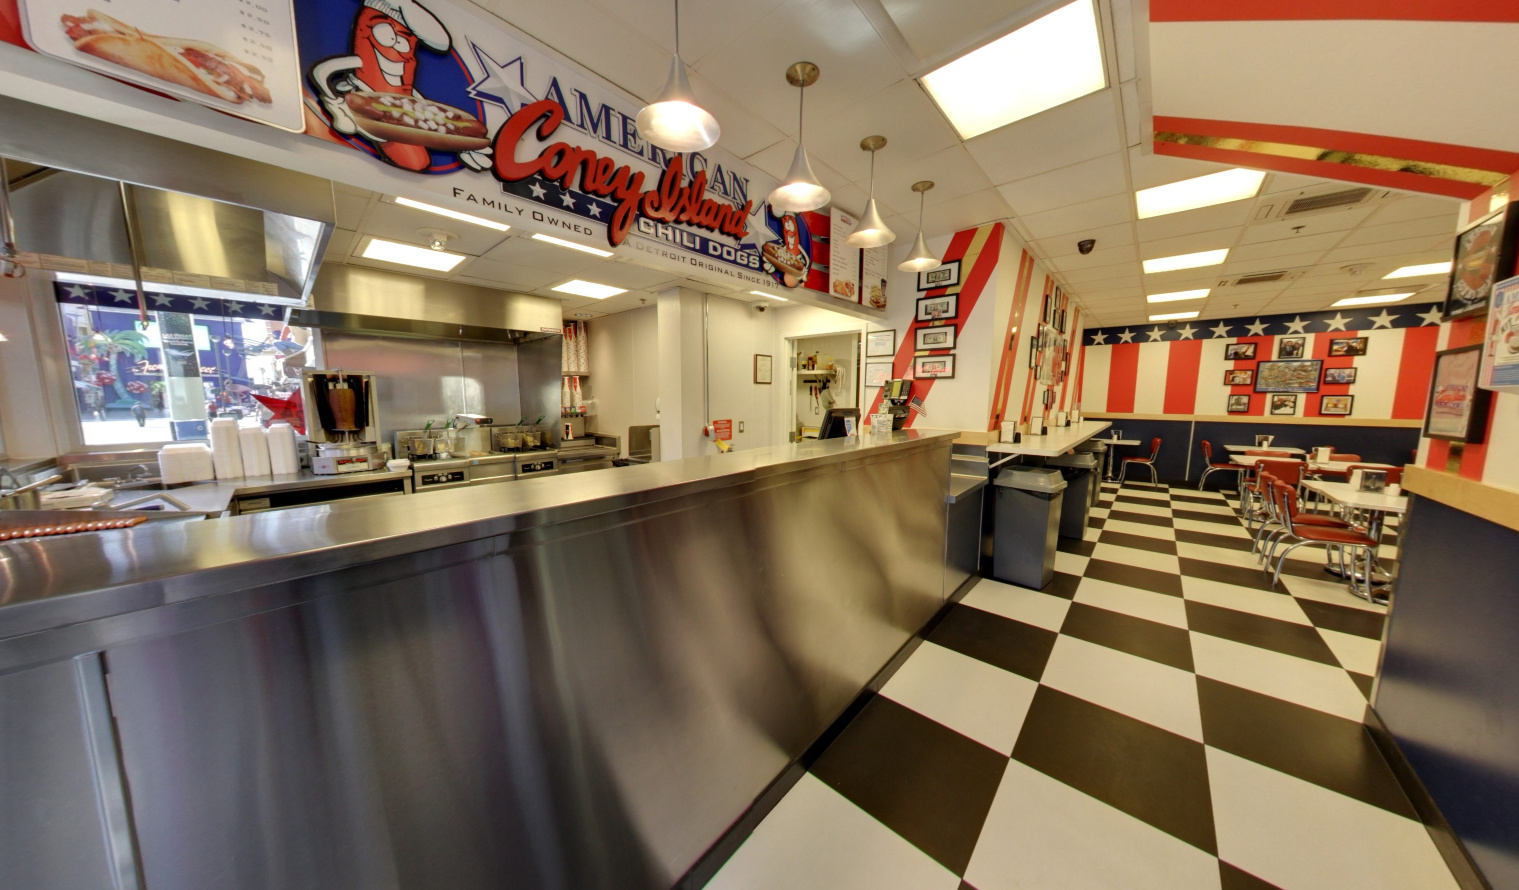 Kitchen counter and dining area of American Coney Island Las Vegas